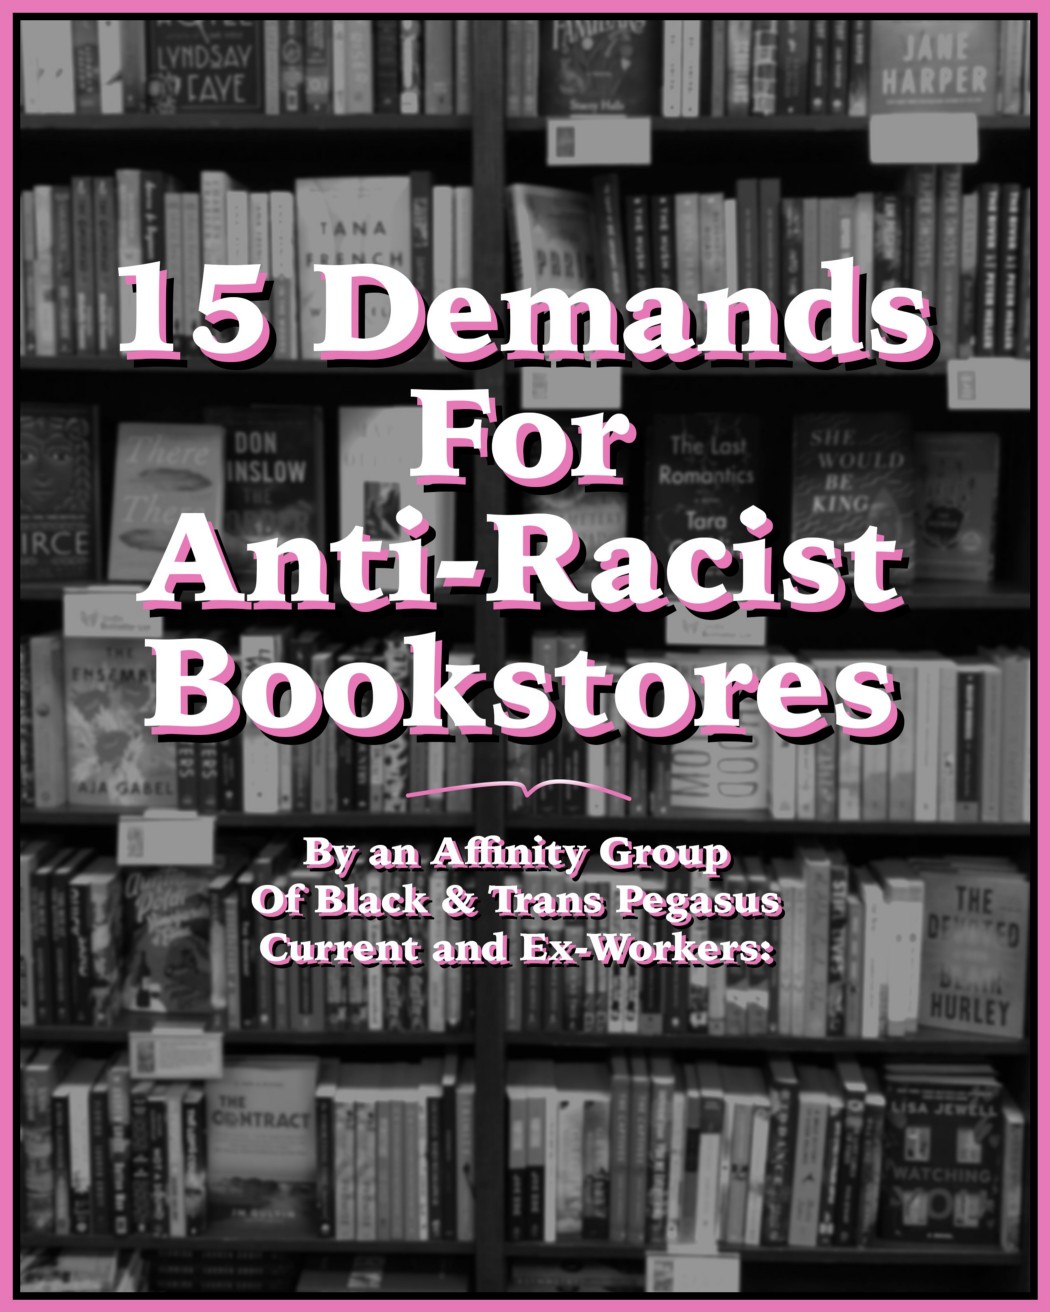 15 Demands for Anti-Racist Bookstores~ By an Affinity Group of Black & Trans Pegasus Current & Ex-Workers